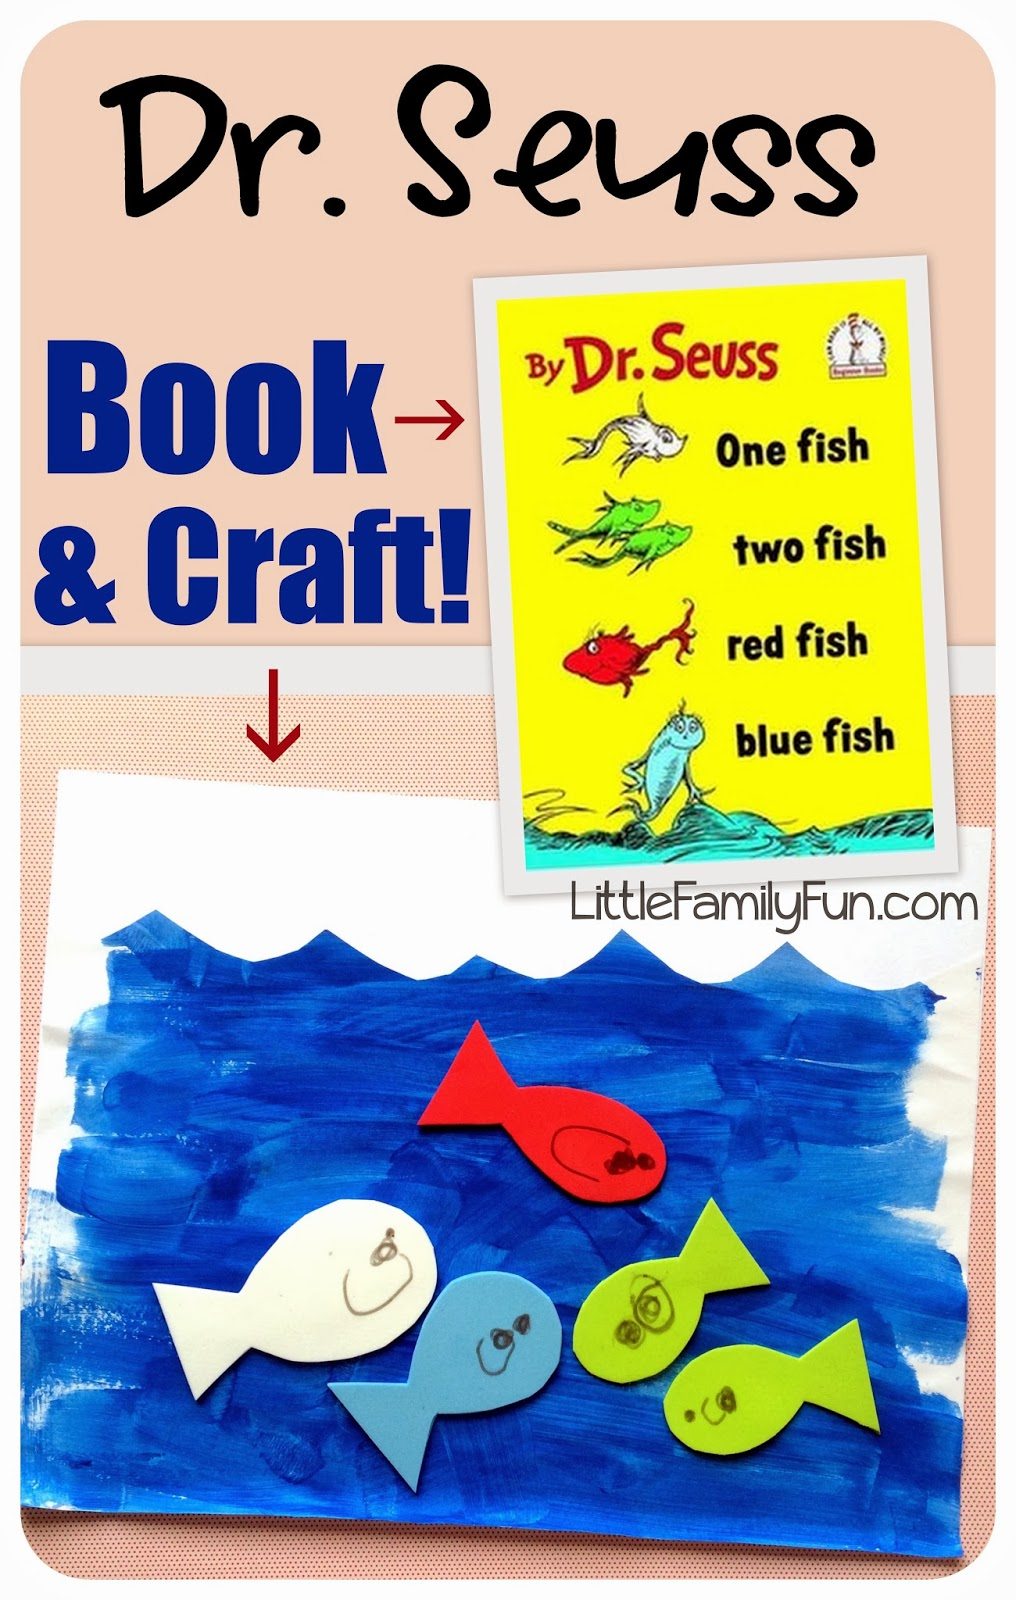 http://www.littlefamilyfun.com/2014/02/one-fish-two-fish-dr-seuss-craft.html